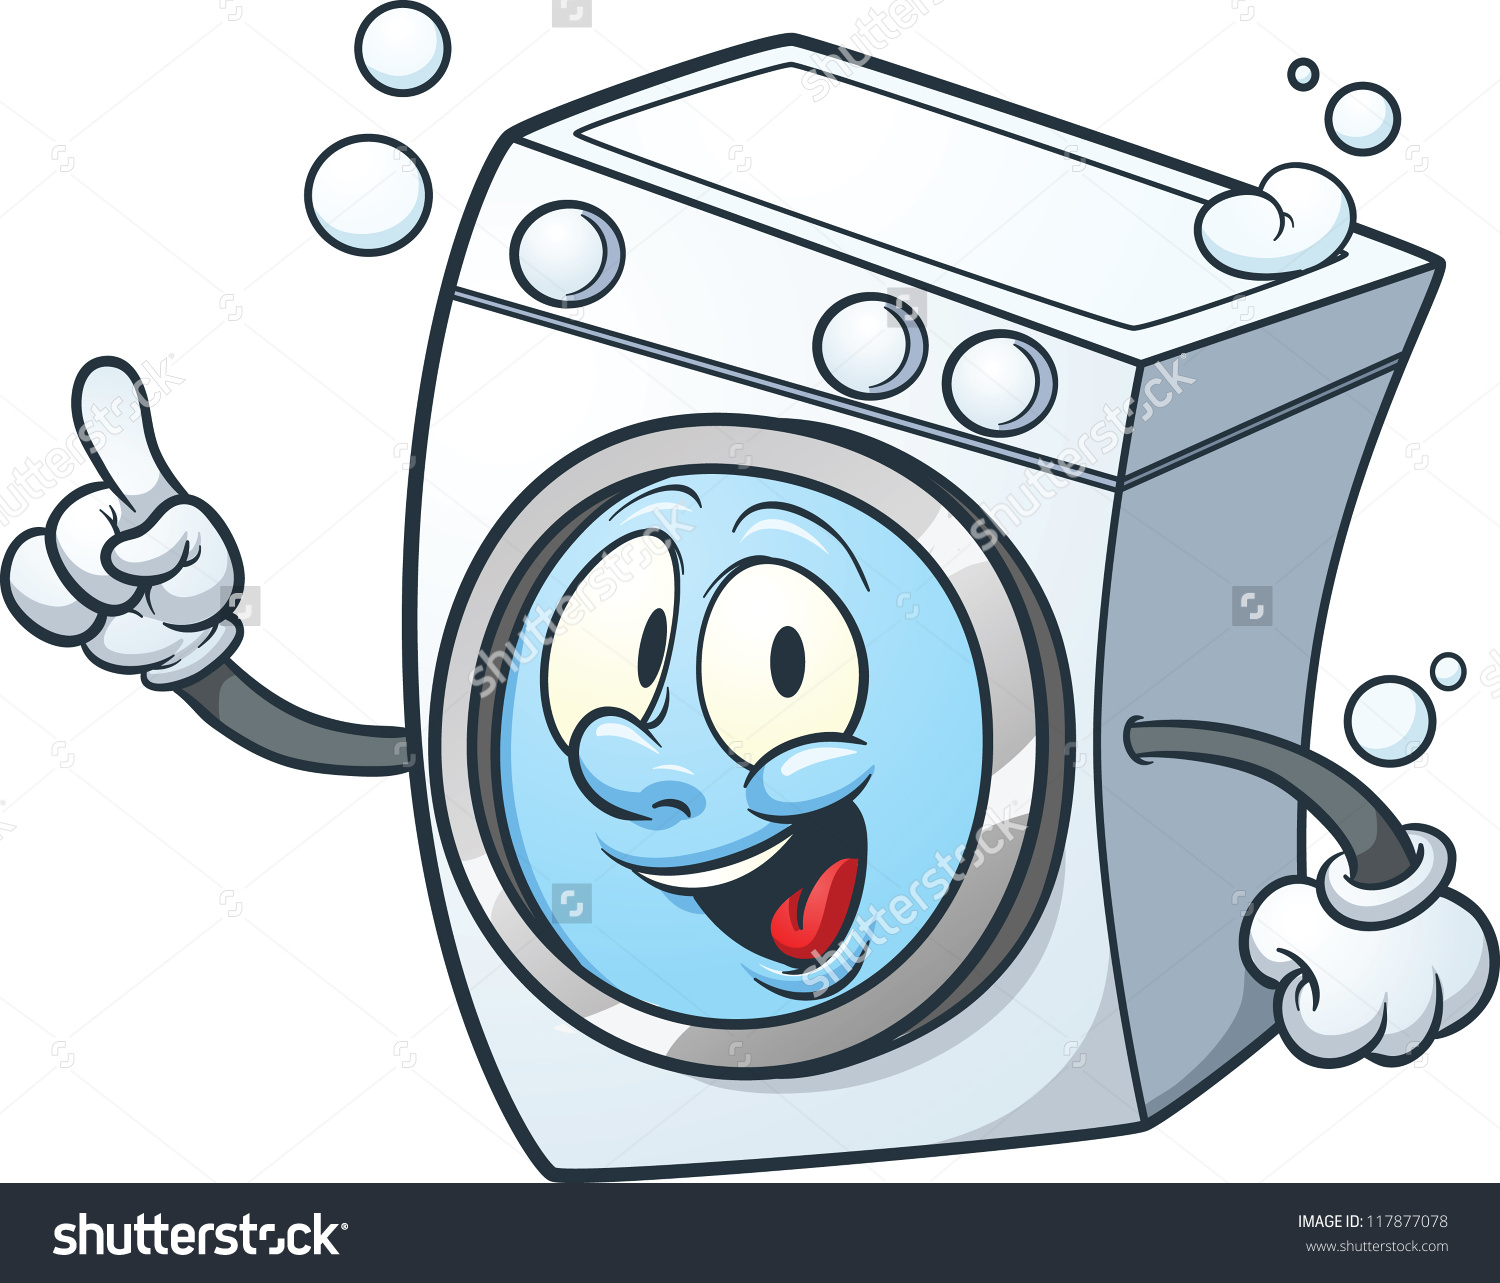 Washing machine clipart picture graphic library library 41+ Washing Machine Clip Art | ClipartLook graphic library library